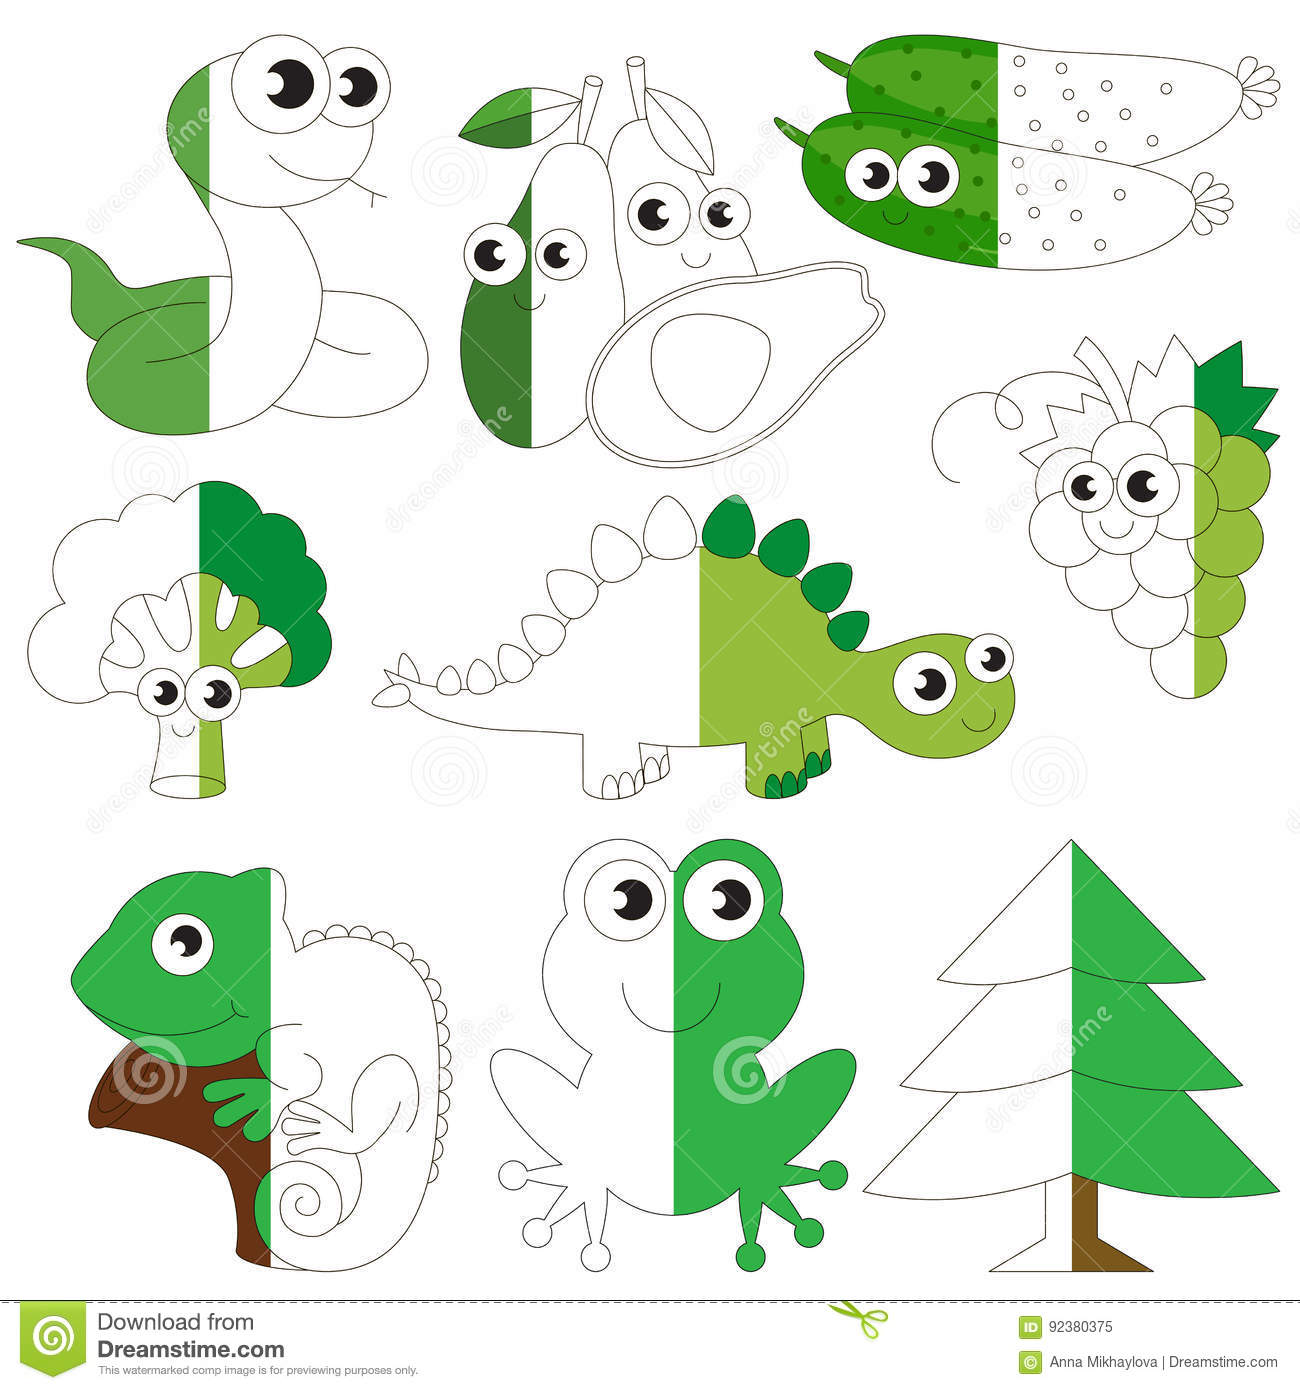 Green Color Animals, Fruits And Vegetables, The Big Kid Game To Be ...